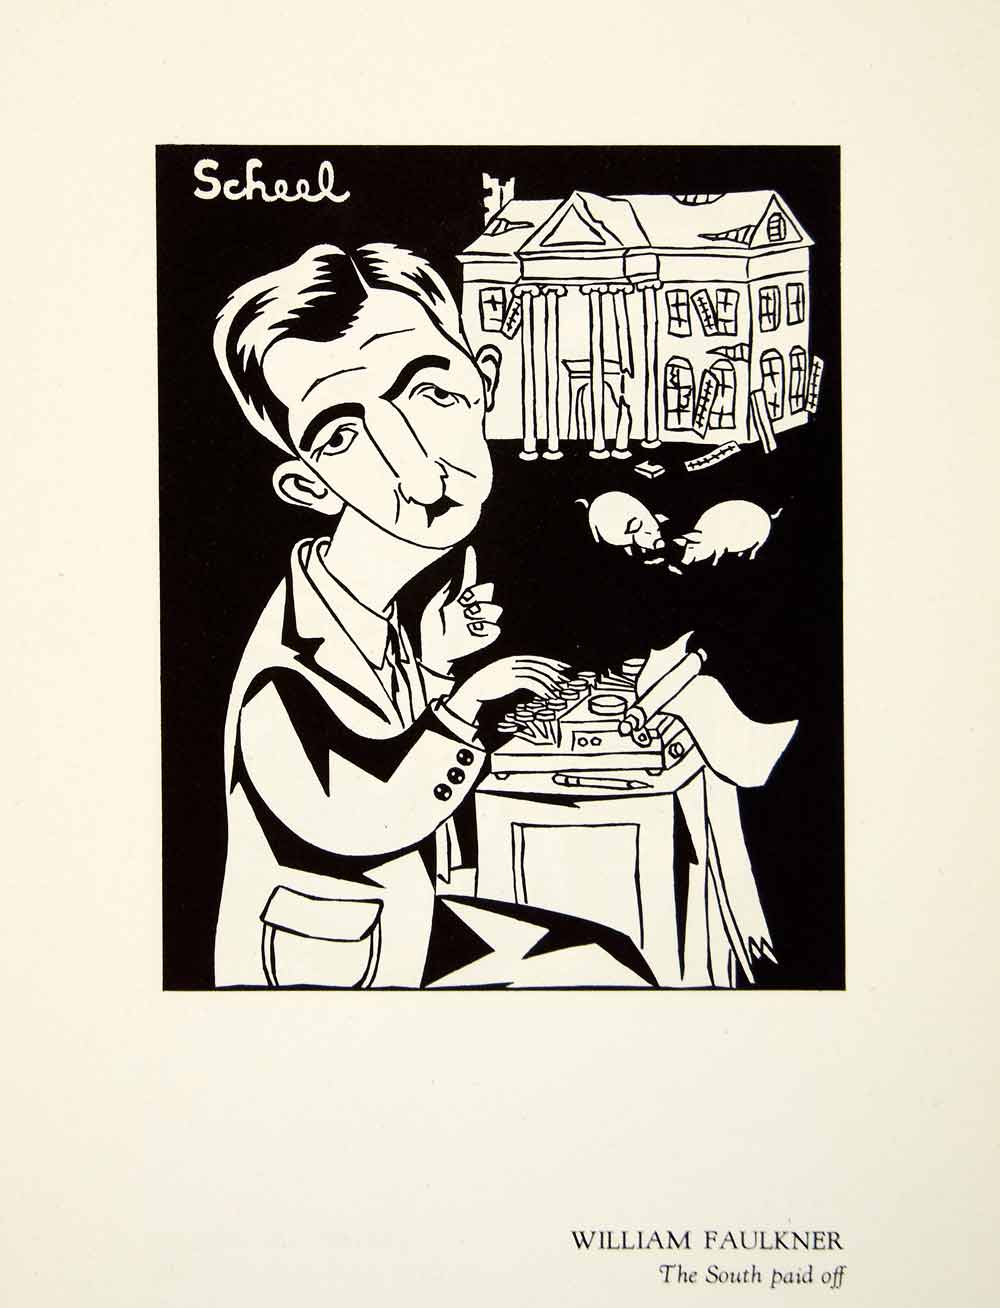 1951 Offset Lithograph William Faulkner South Paid Caricature Theodor Scheel